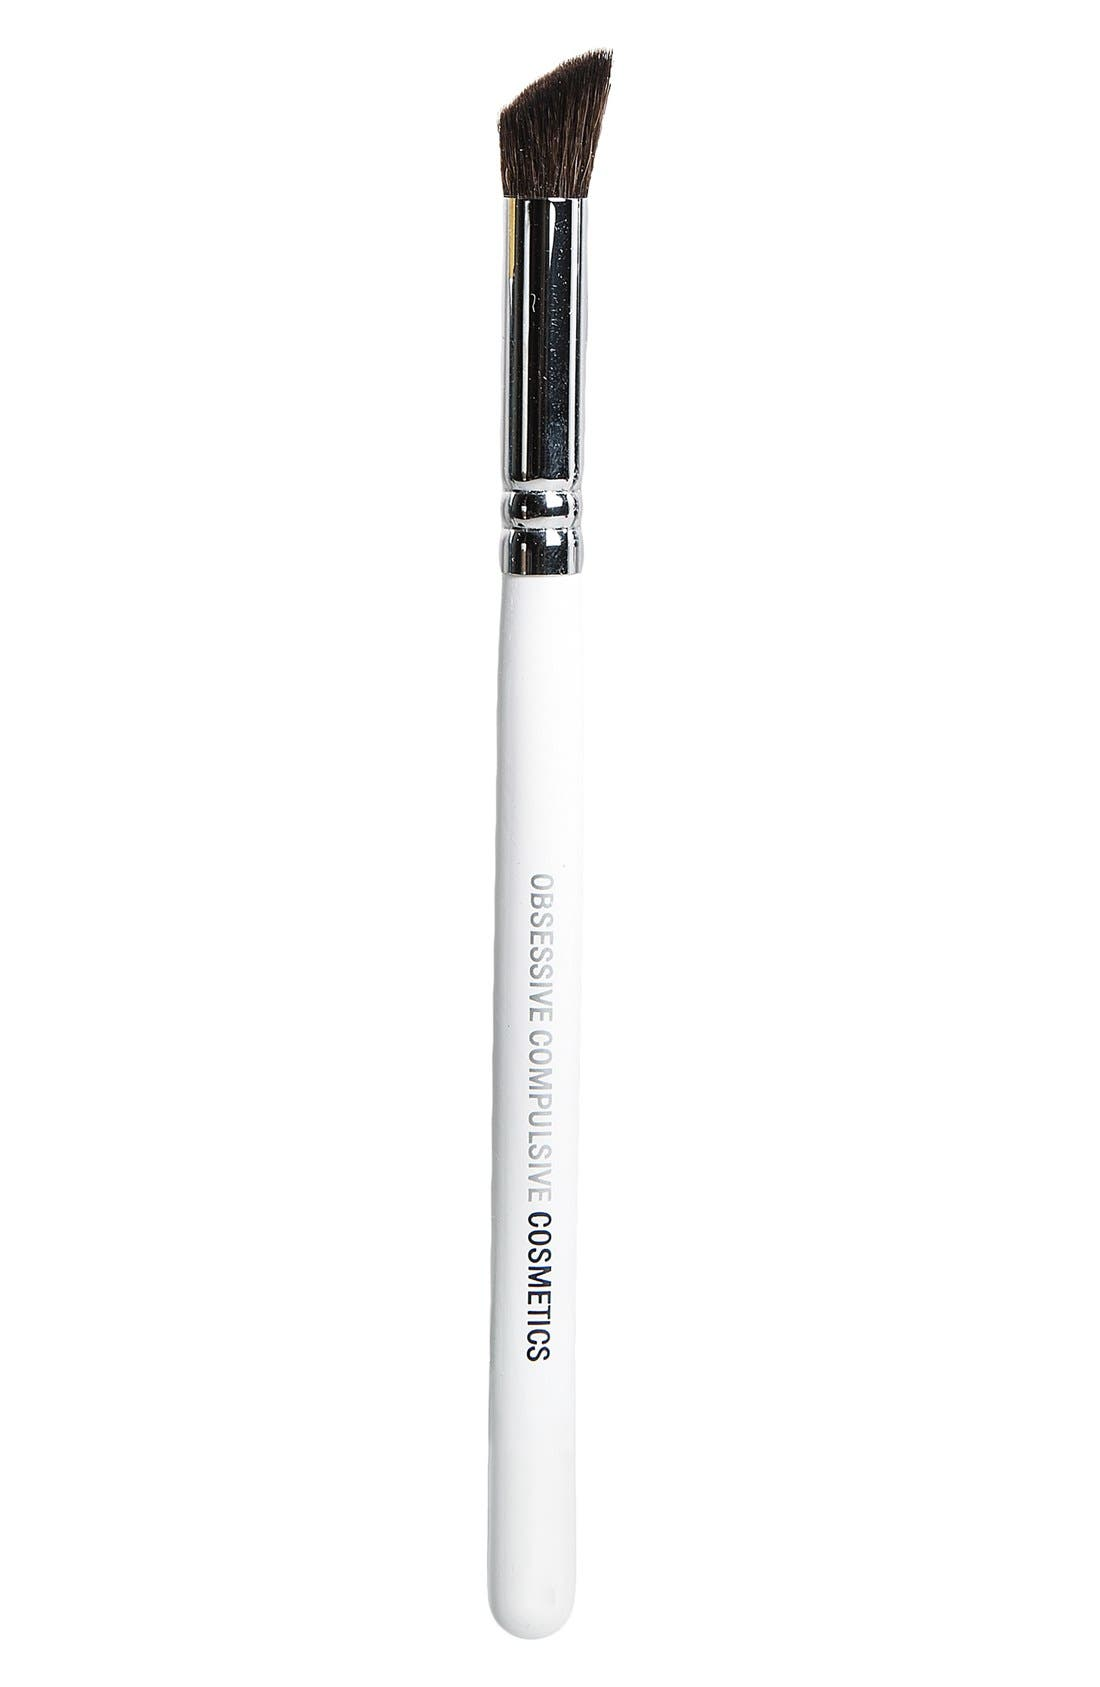 Angled Blending Brush,                         Main,                         color, NO COLOR